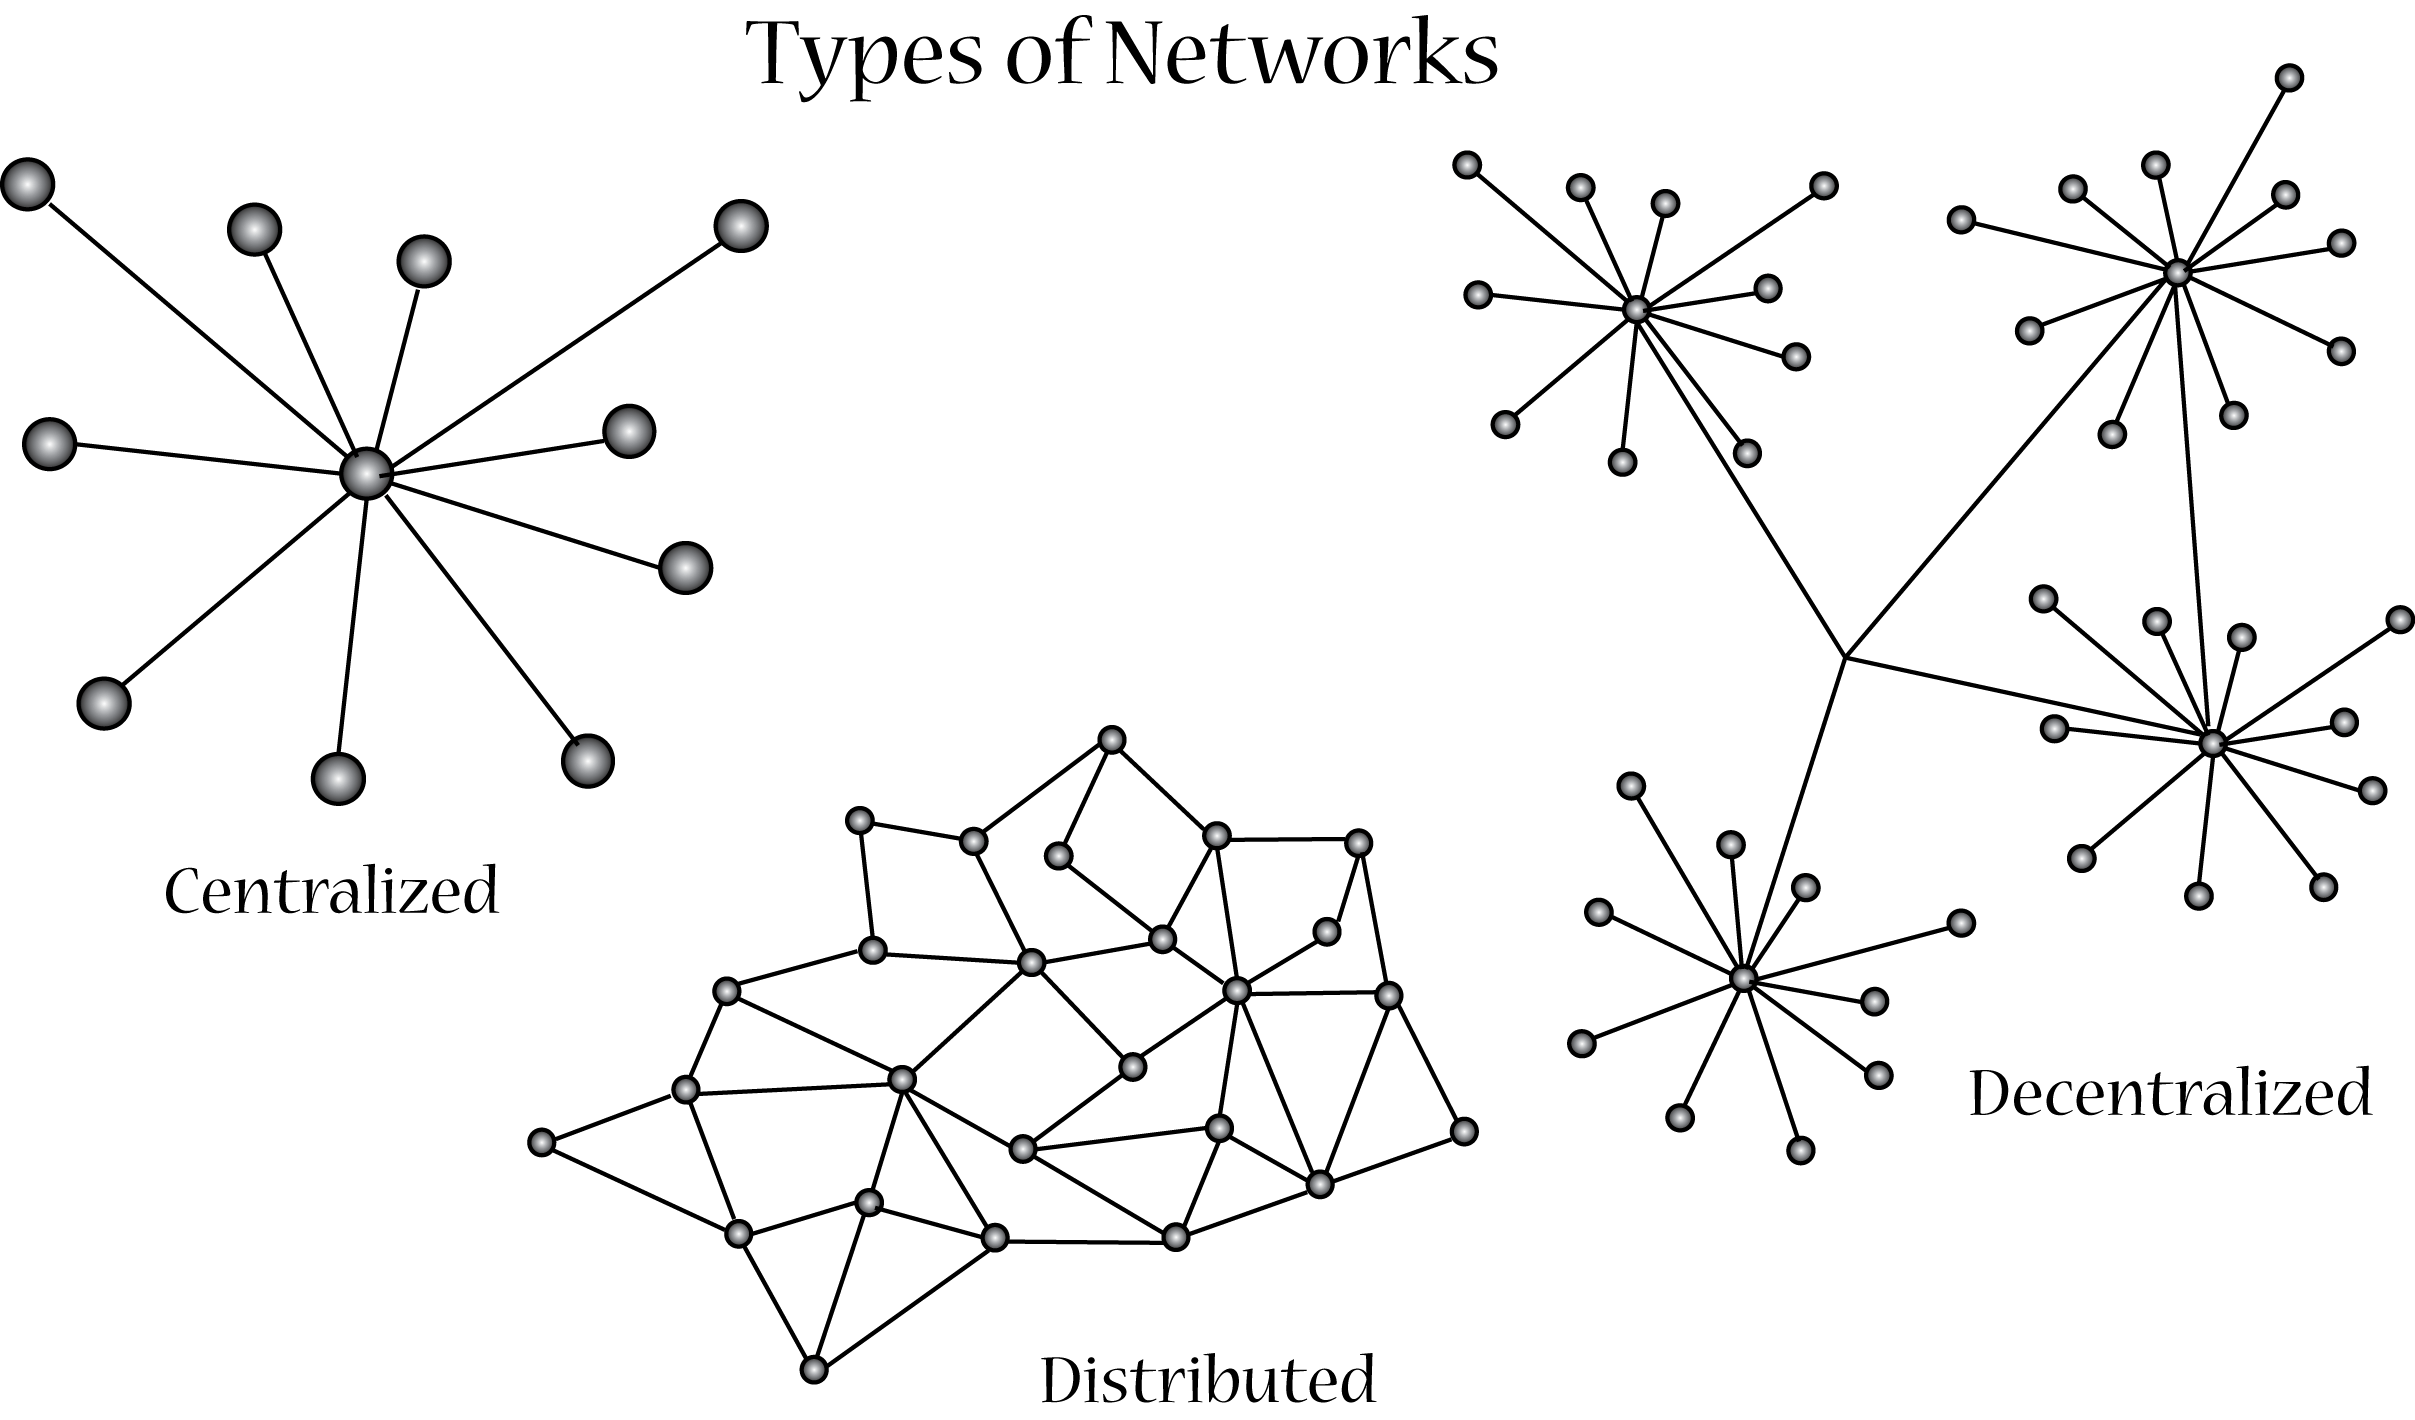 Network clipart centralization, Network centralization